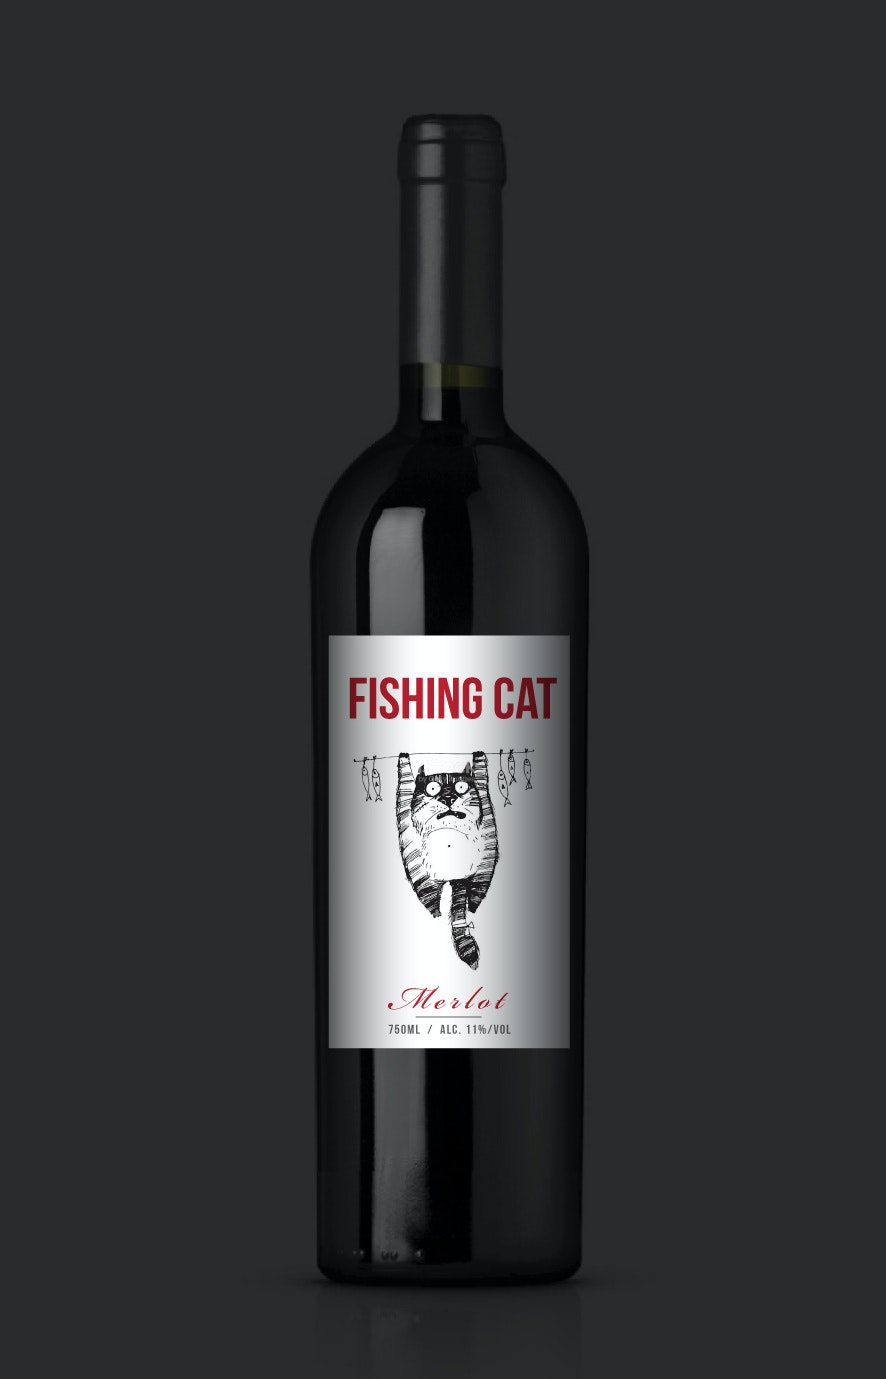 Fishing cat modern wine label